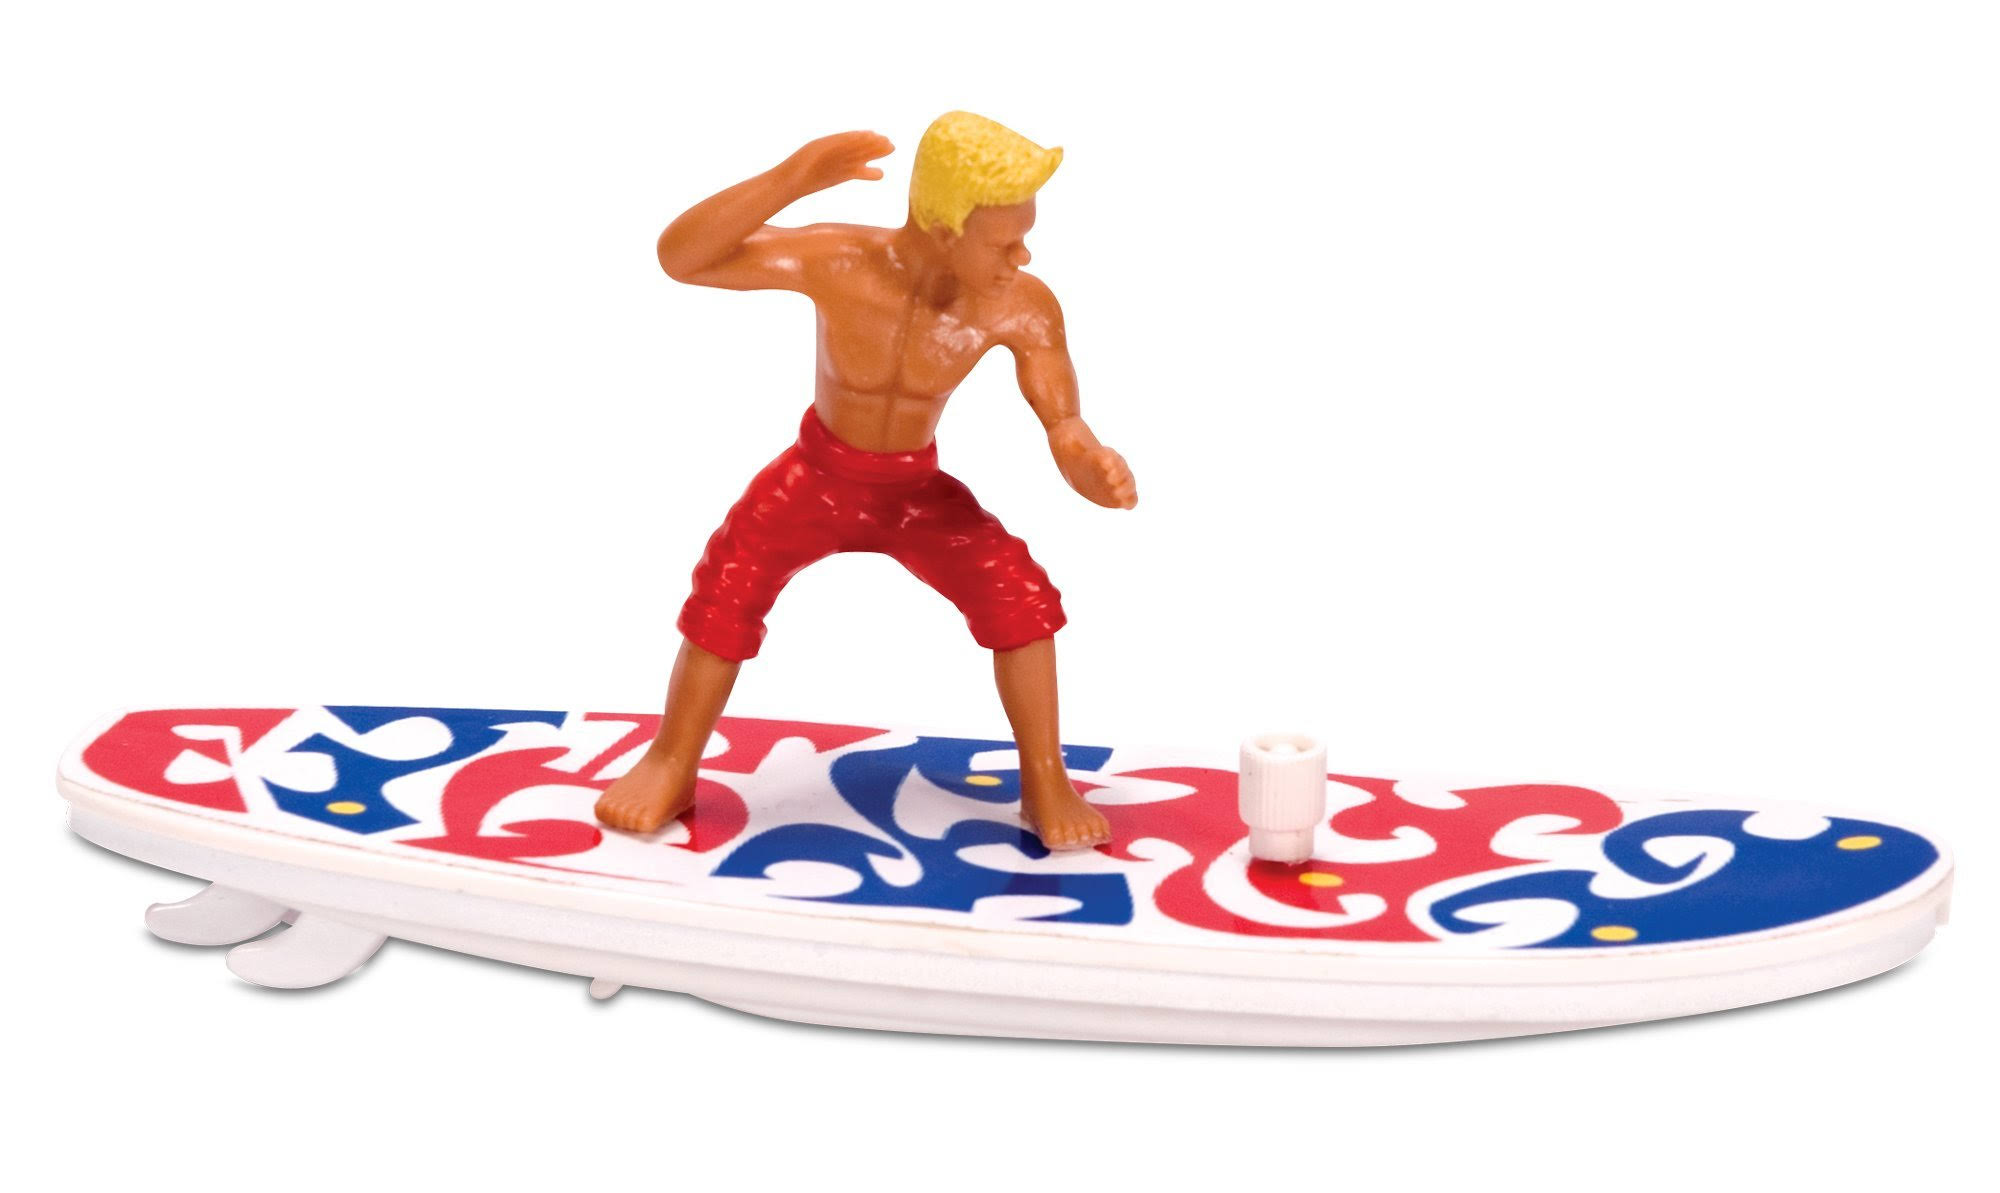 Schylling Wind up Surfer Figure Toy